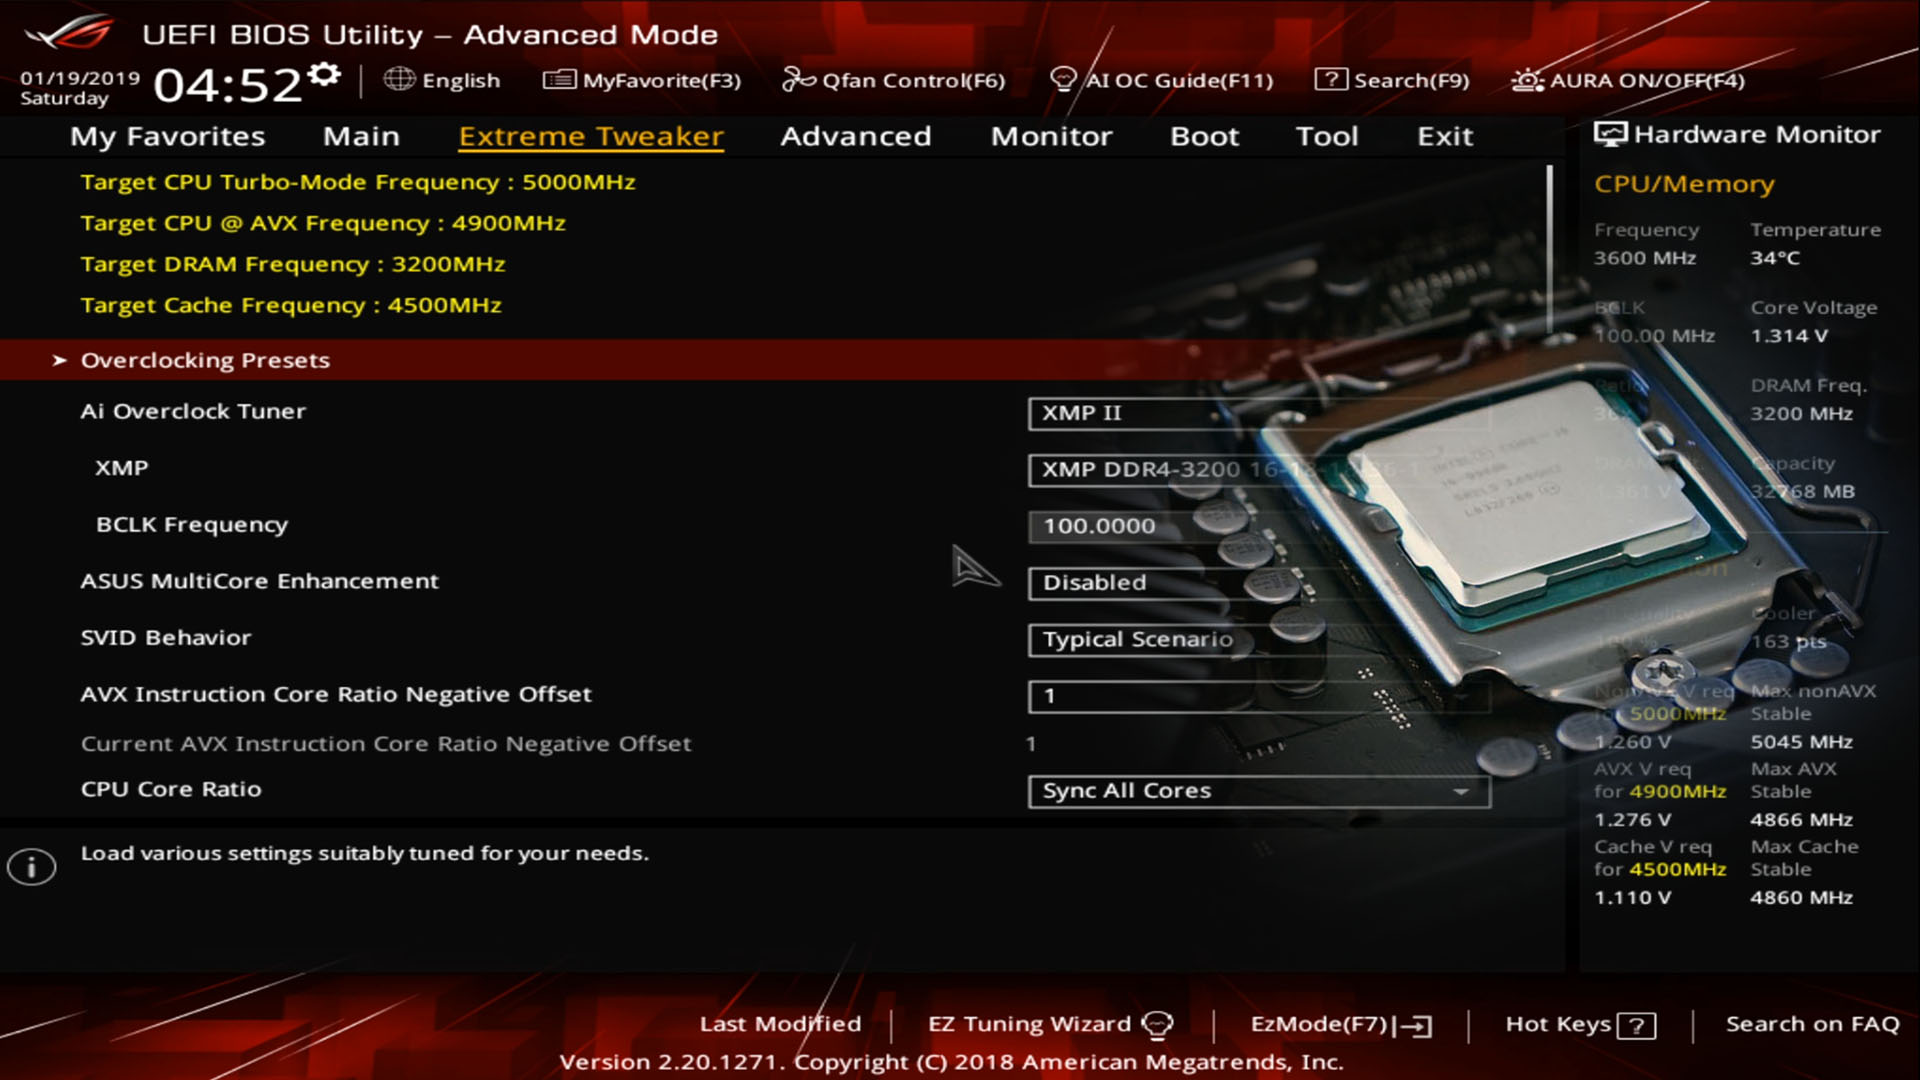 The Complete i9 9900K Overclocking Guide - Maximus XI Z390